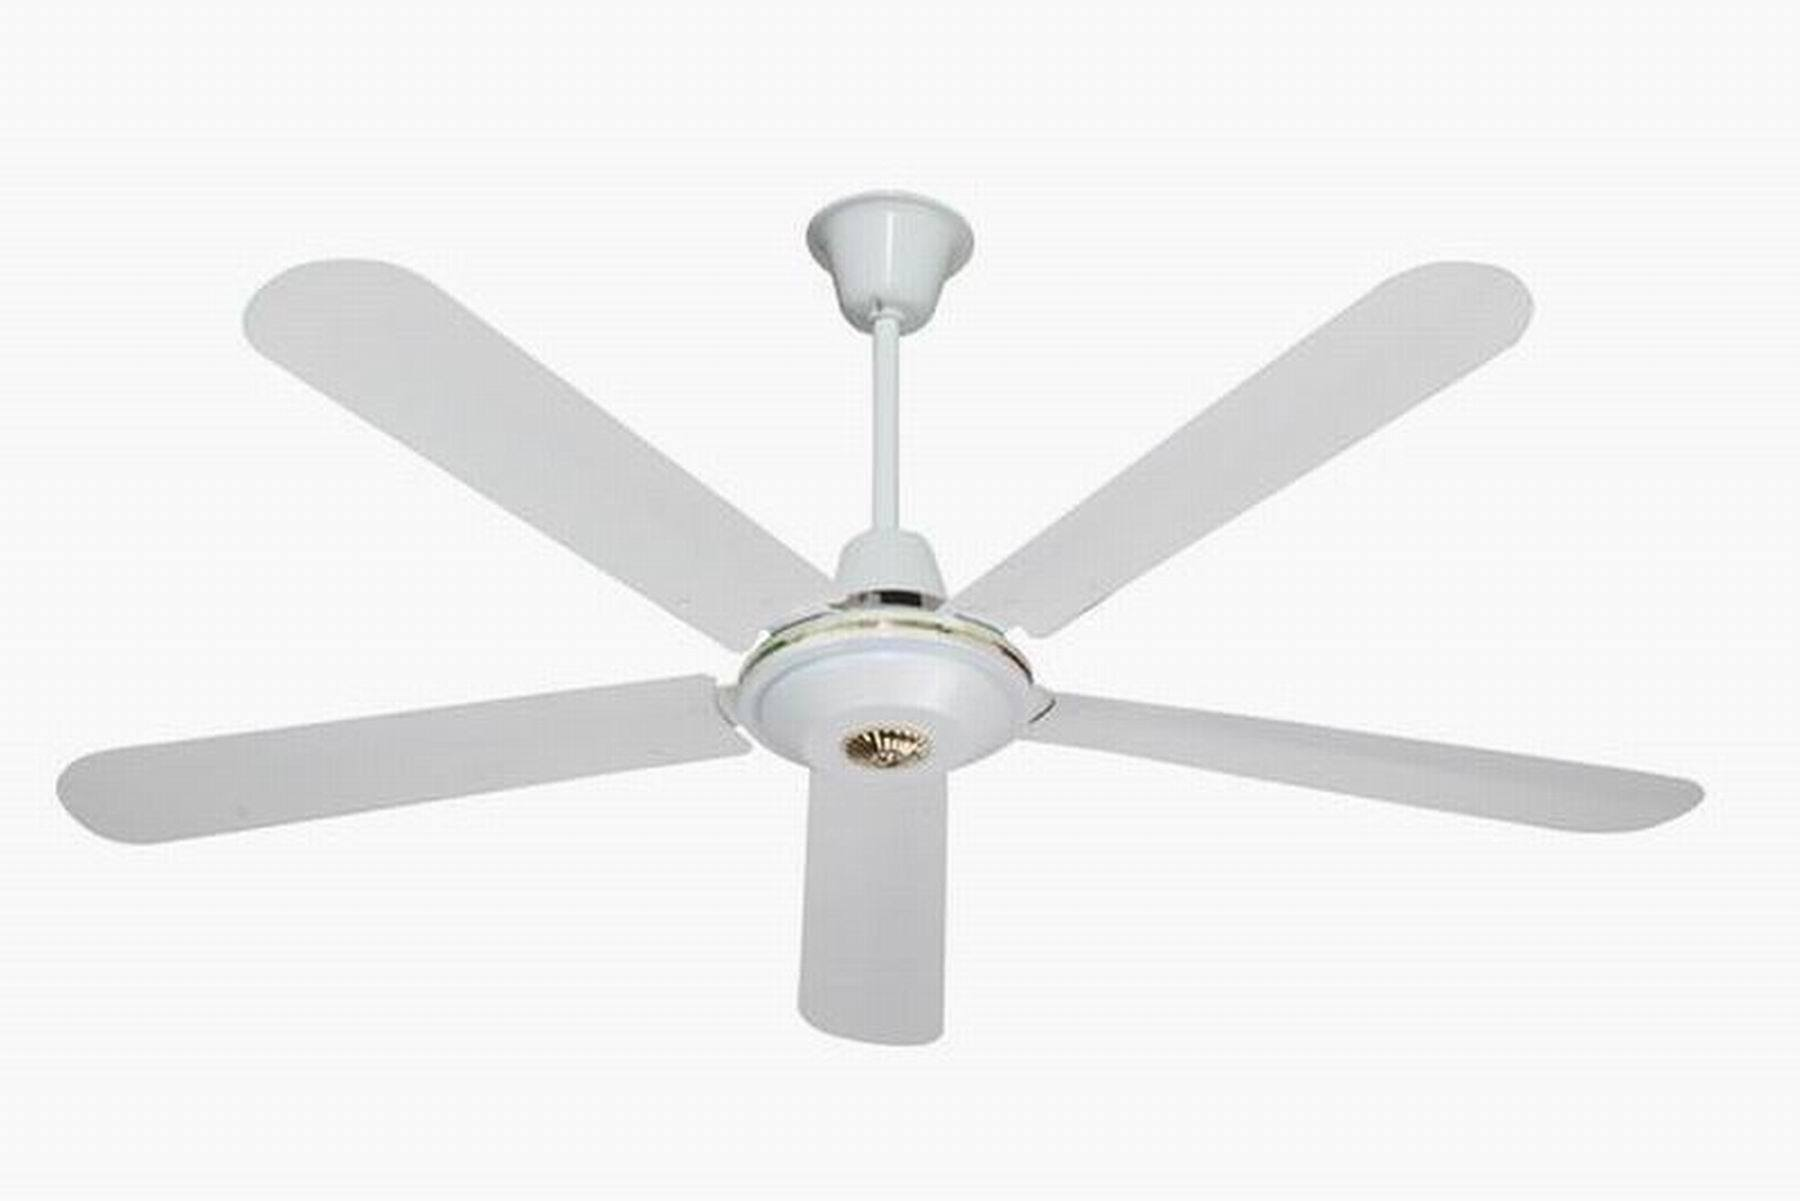 High Speed Fan Blades : Pin ceiling fan speed controller schematic on pinterest